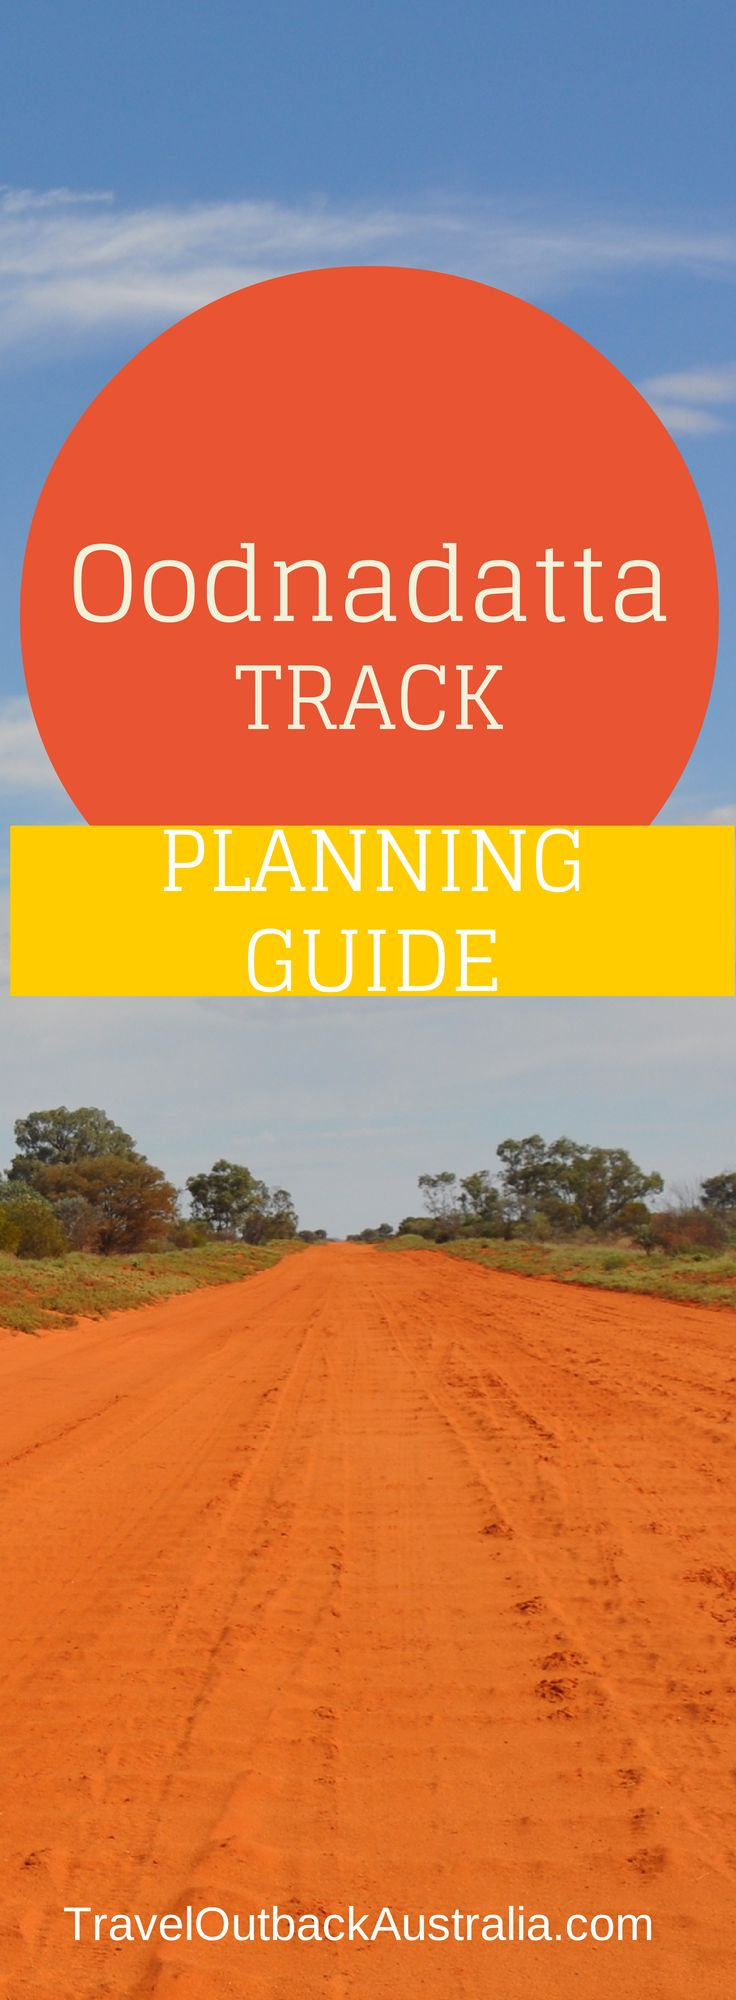 We LOVE the #Oodnadatta Track so much we've done it 11 times. Read our complete guide: http://traveloutbackaustralia.com/oodnadatta-track.html/ #outback #Australia #SouthAustralia